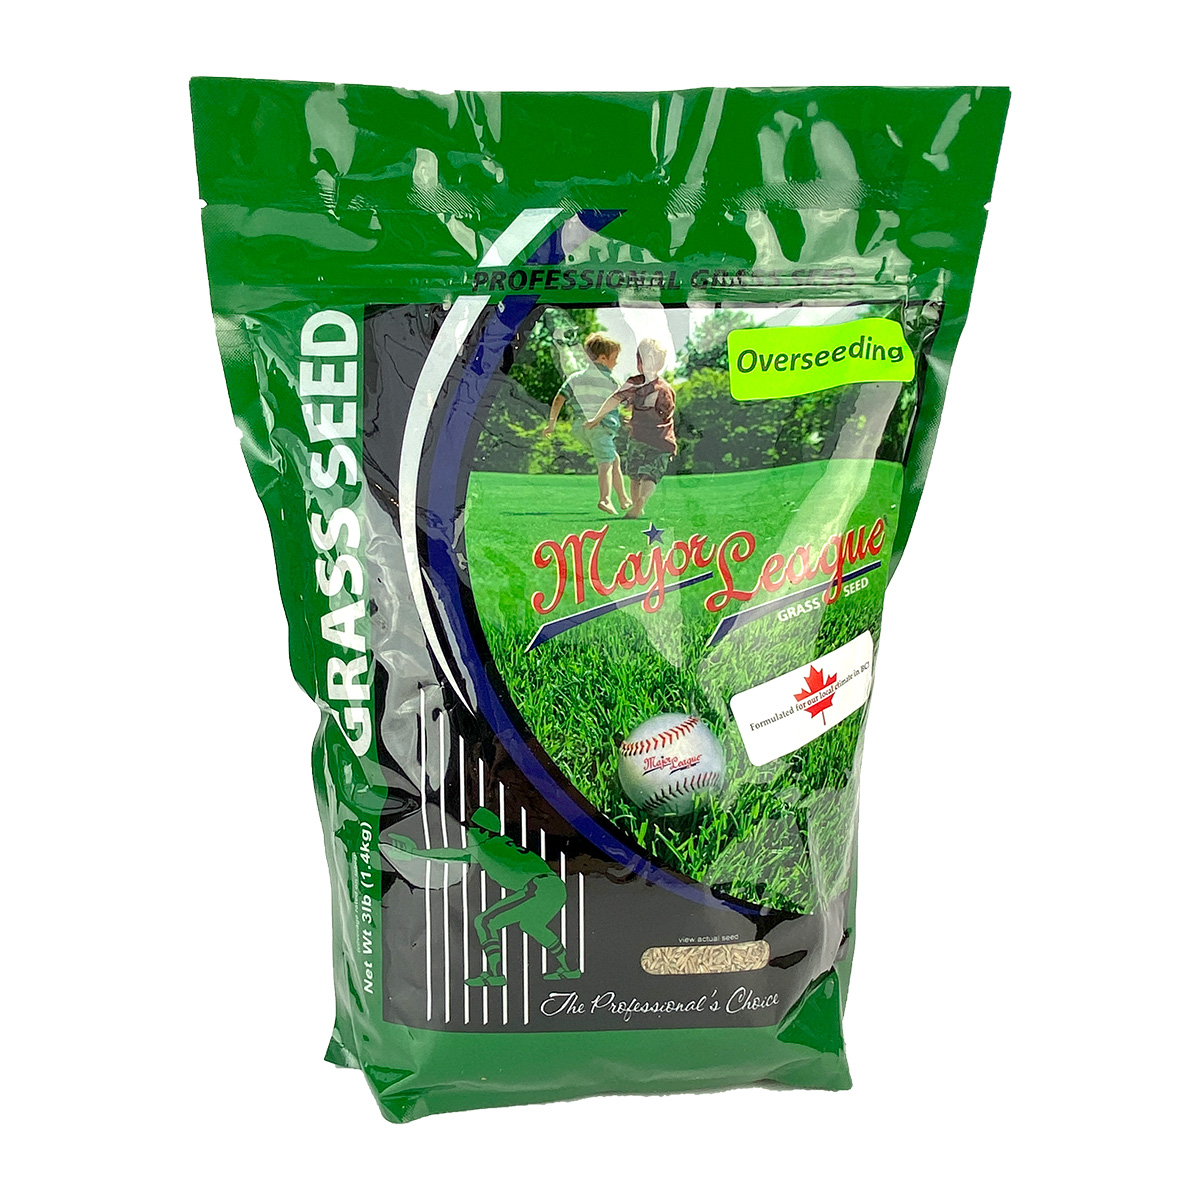 Major League Grass Seed Overseeding Mix 1400g